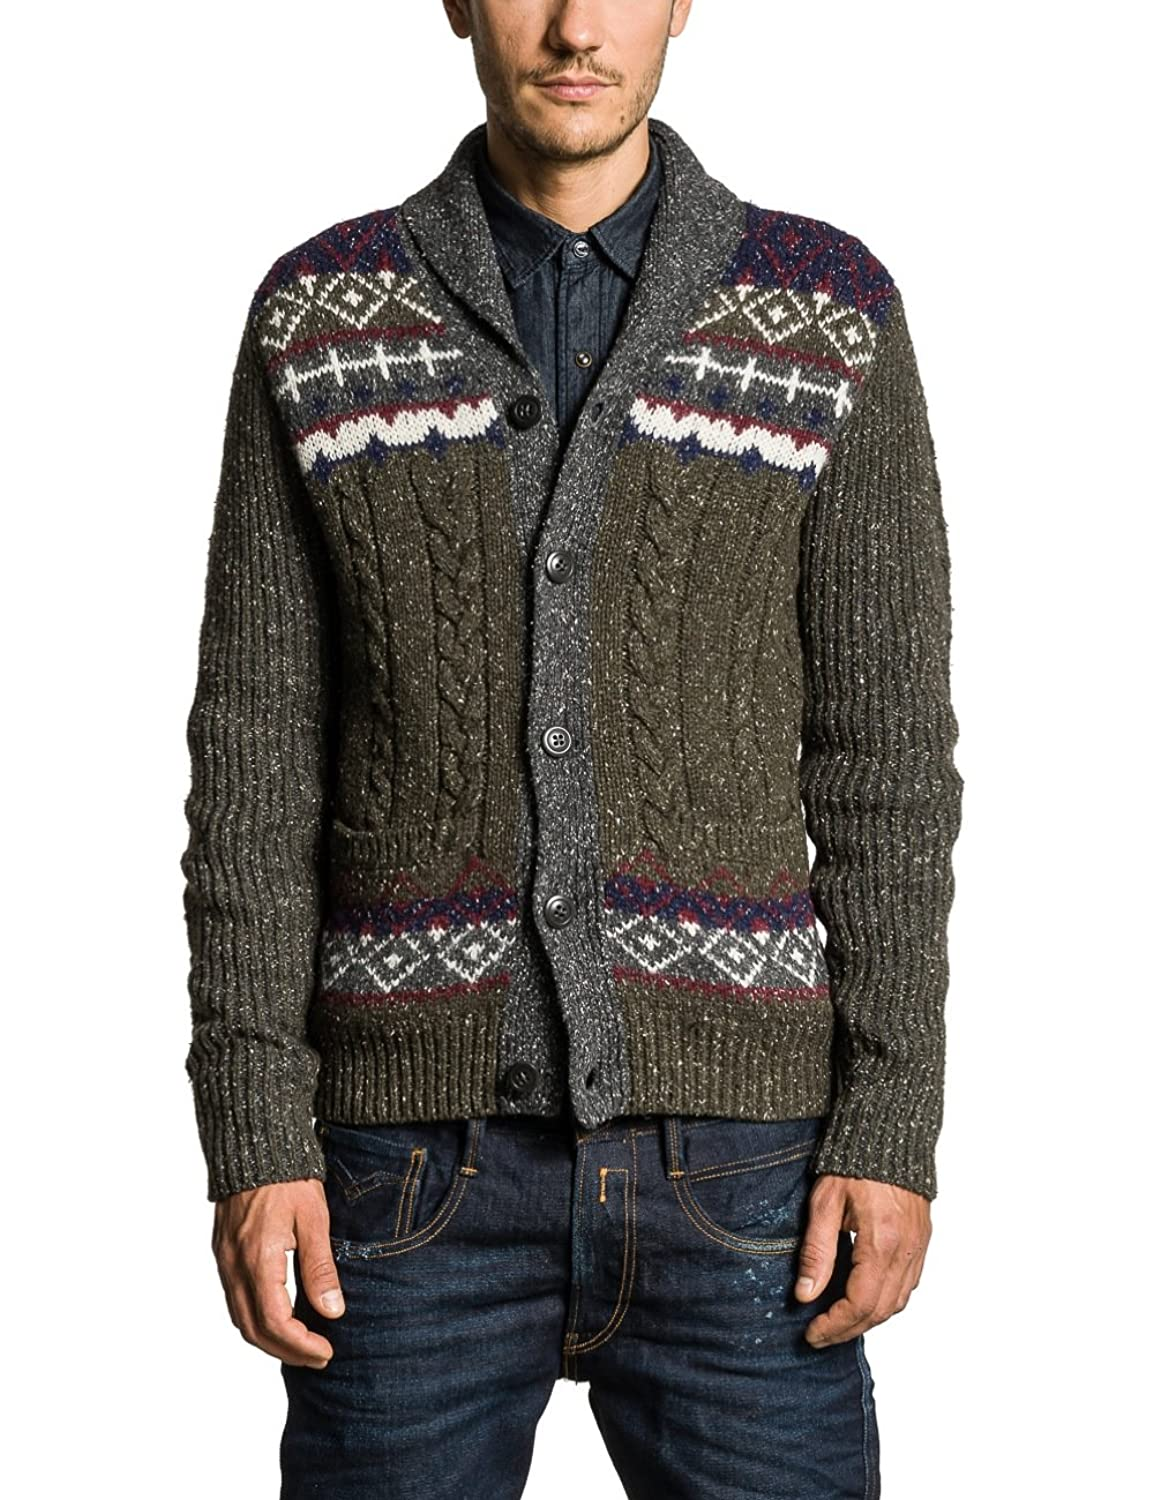 Replay Herren Strickjacke UK1040.000.G21422U günstig